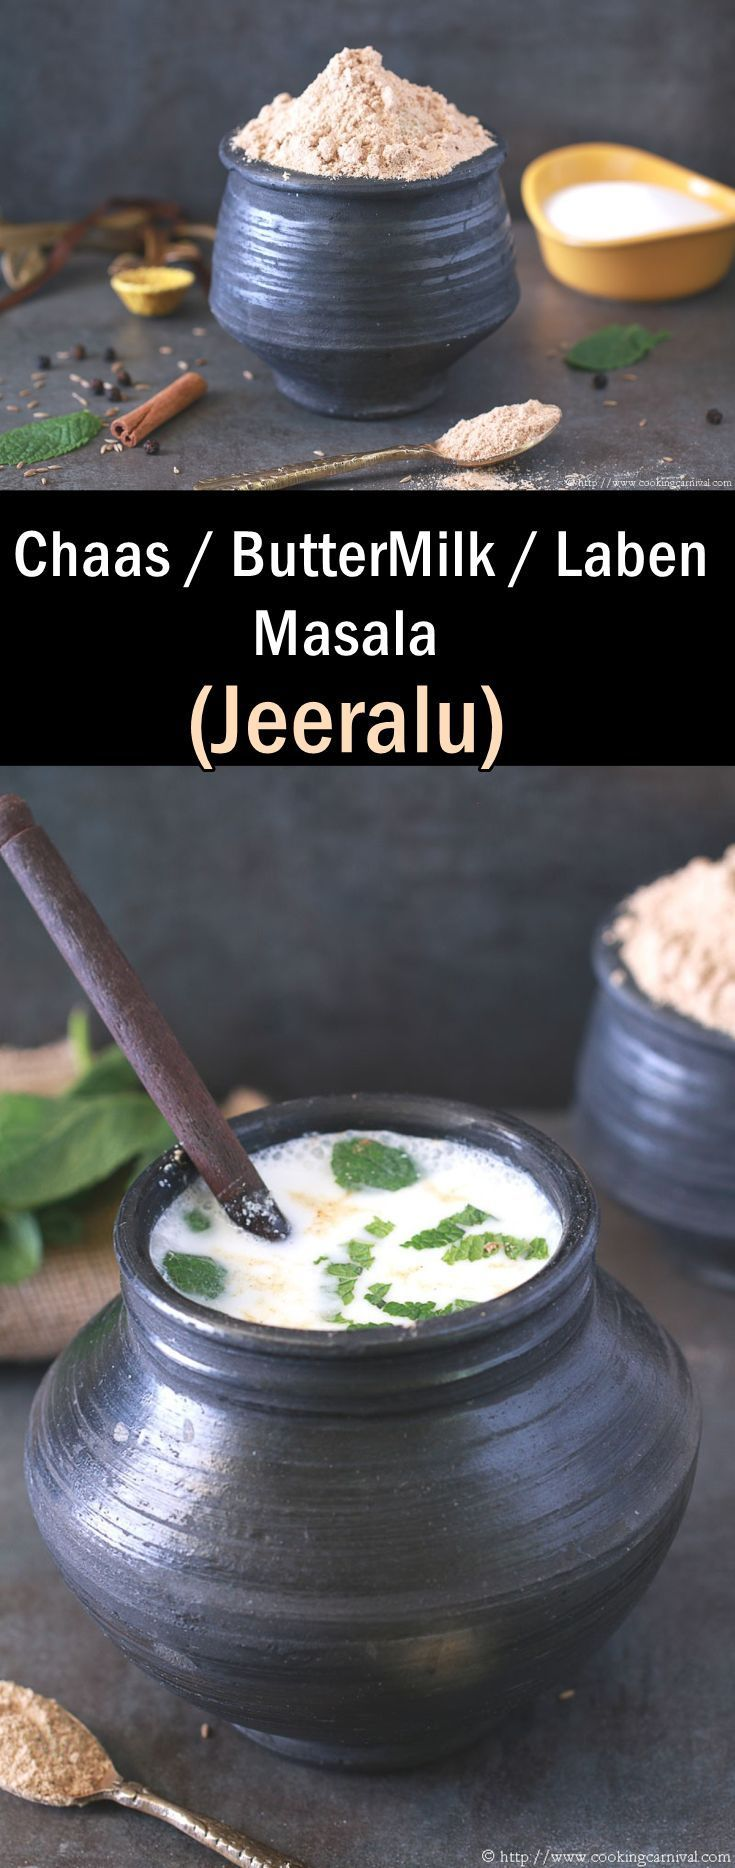 Chaas Masala / Jeeralu is very flavorful and digestive spice blend. Chaas / Laben / Buttermilk is a very popular drink in India, especially during summer. Its more healthier than juices and other drinks. Every family have their own masala recipe. This is my Mother In Laws recipe. She make this every year. You can easily store this up to a year at room temperature. Chaas Masala is Multipurpose. You can sprinkle this masala on fruits, season your salad, sprinkle over sandwiches or make…